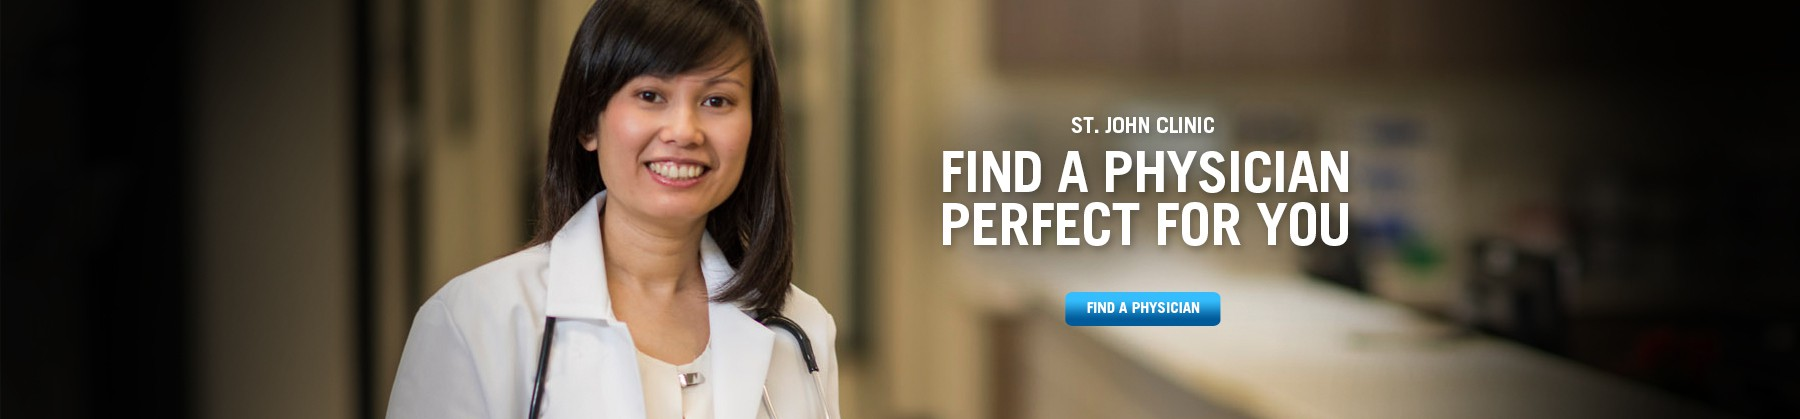 Find a physician perfect for you